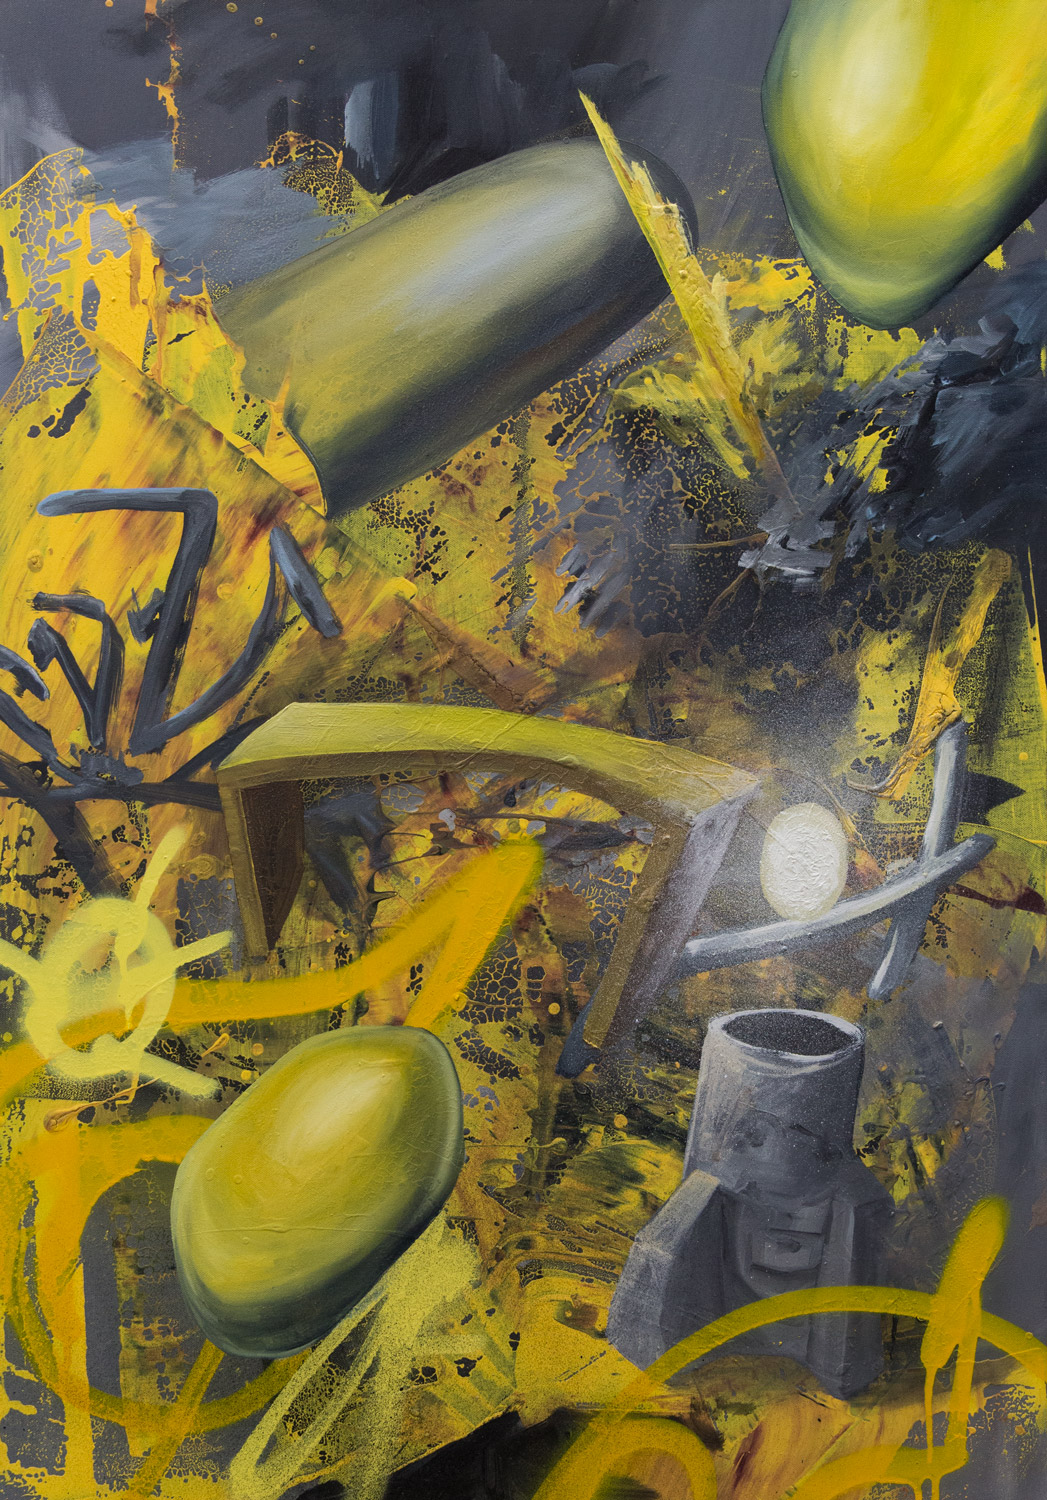 Stove; 70 x 100 cm; acrylics and oil on canvas; 2021